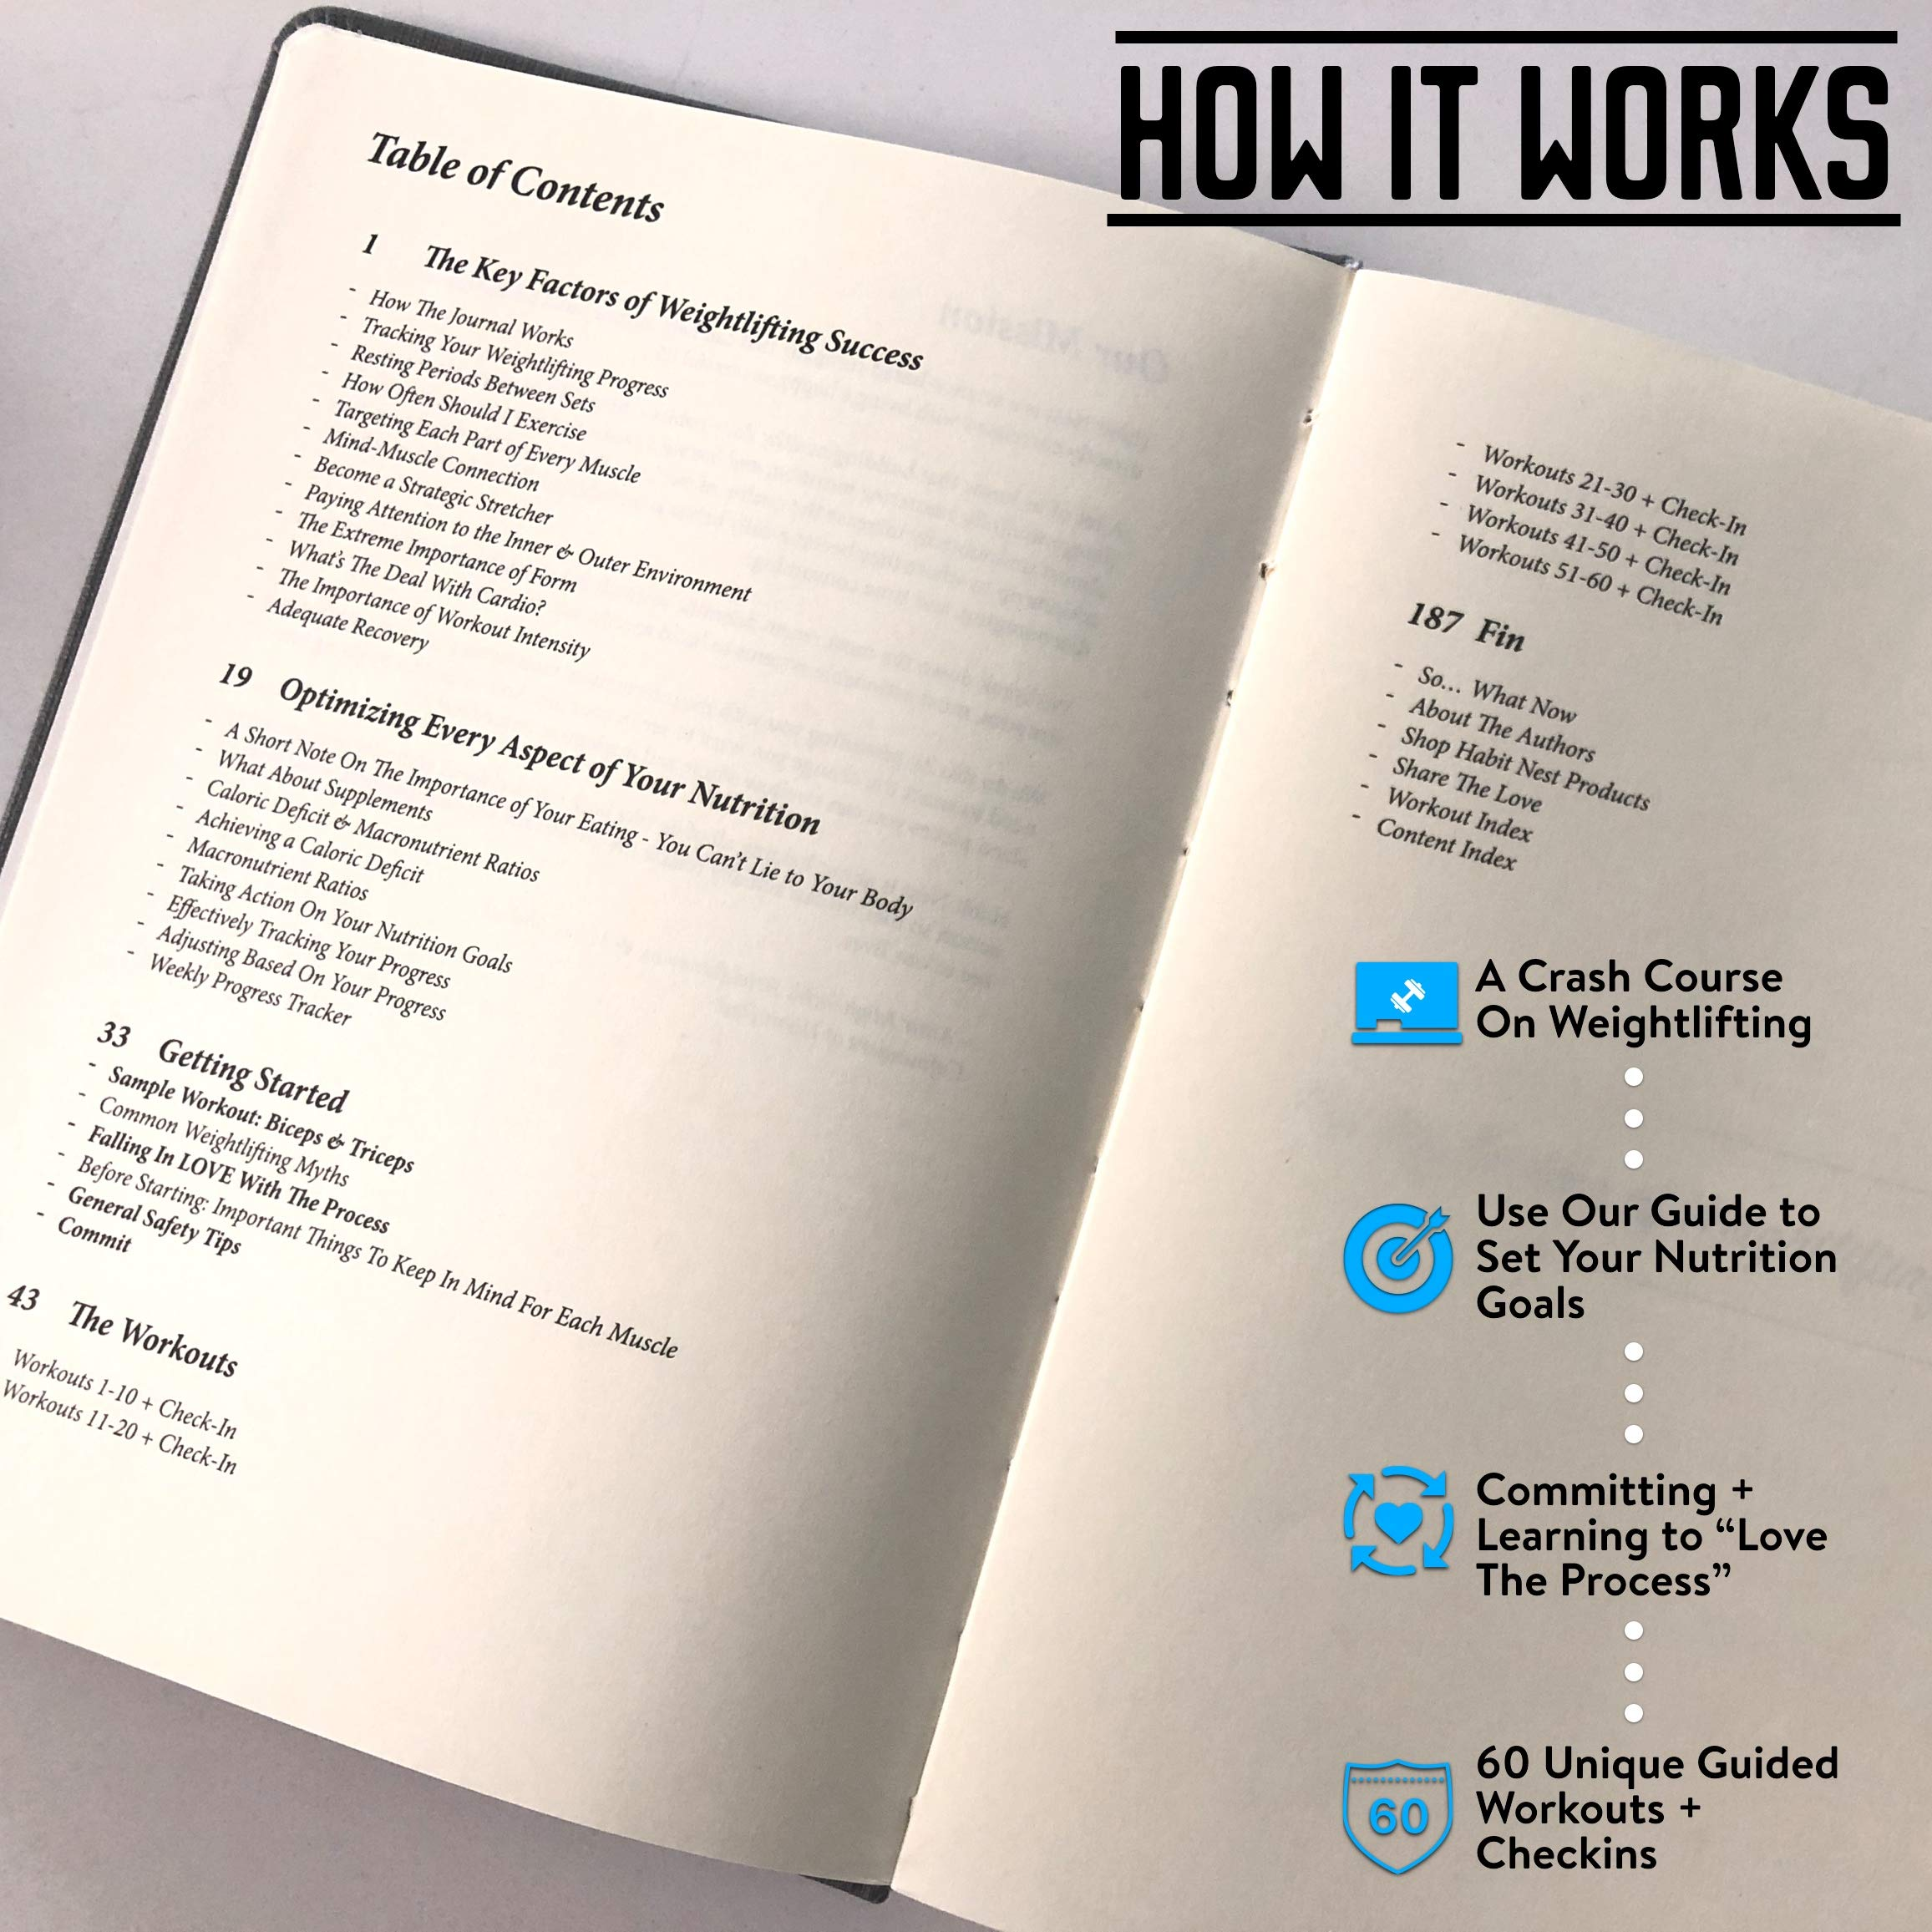 Habit Nest The Weightlifting Gym Buddy Journal. A 12-Week Personal Training Program in A Journal, with Workout and Exercise Journal/Log. Your Ultimate Fitness Planner. by Habit Nest (Image #2)